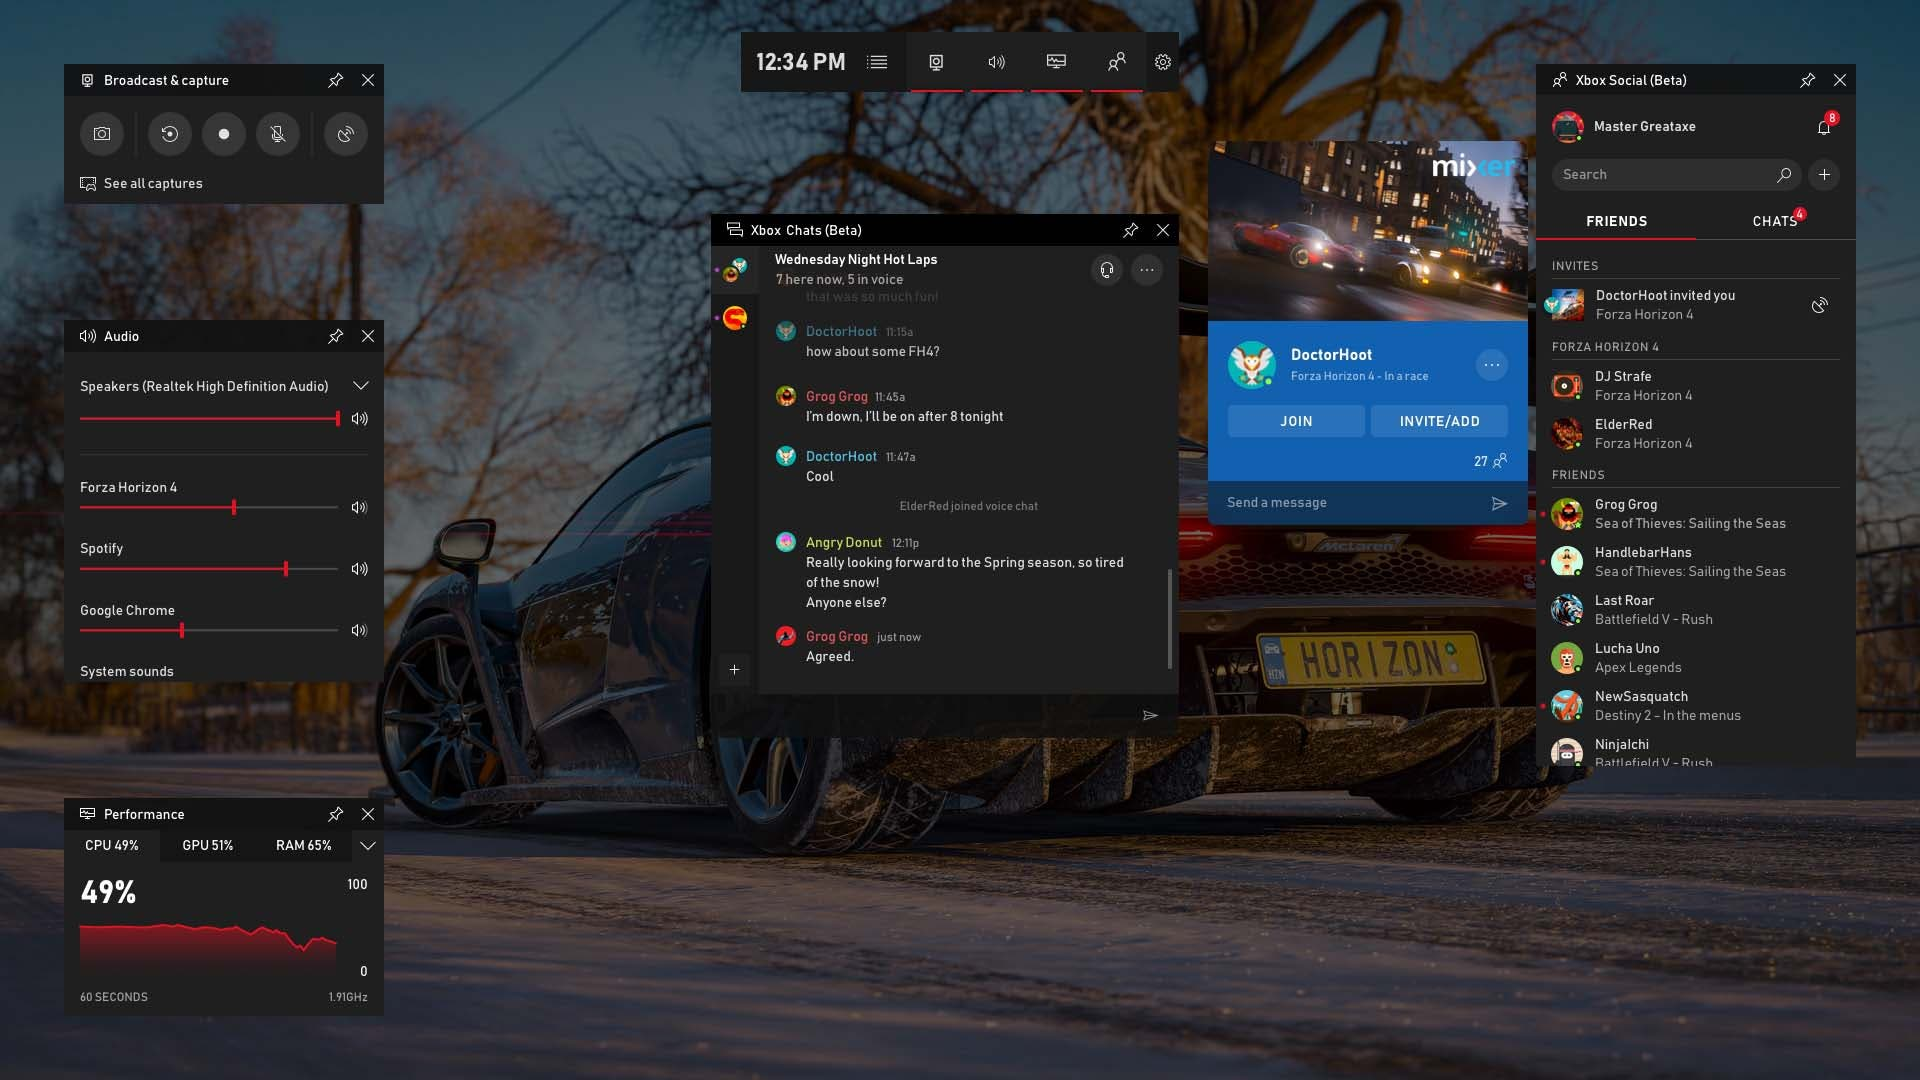 La Windows Game Bar se actualiza con muchas funciones interesantes, como Spotify o crear memes 4